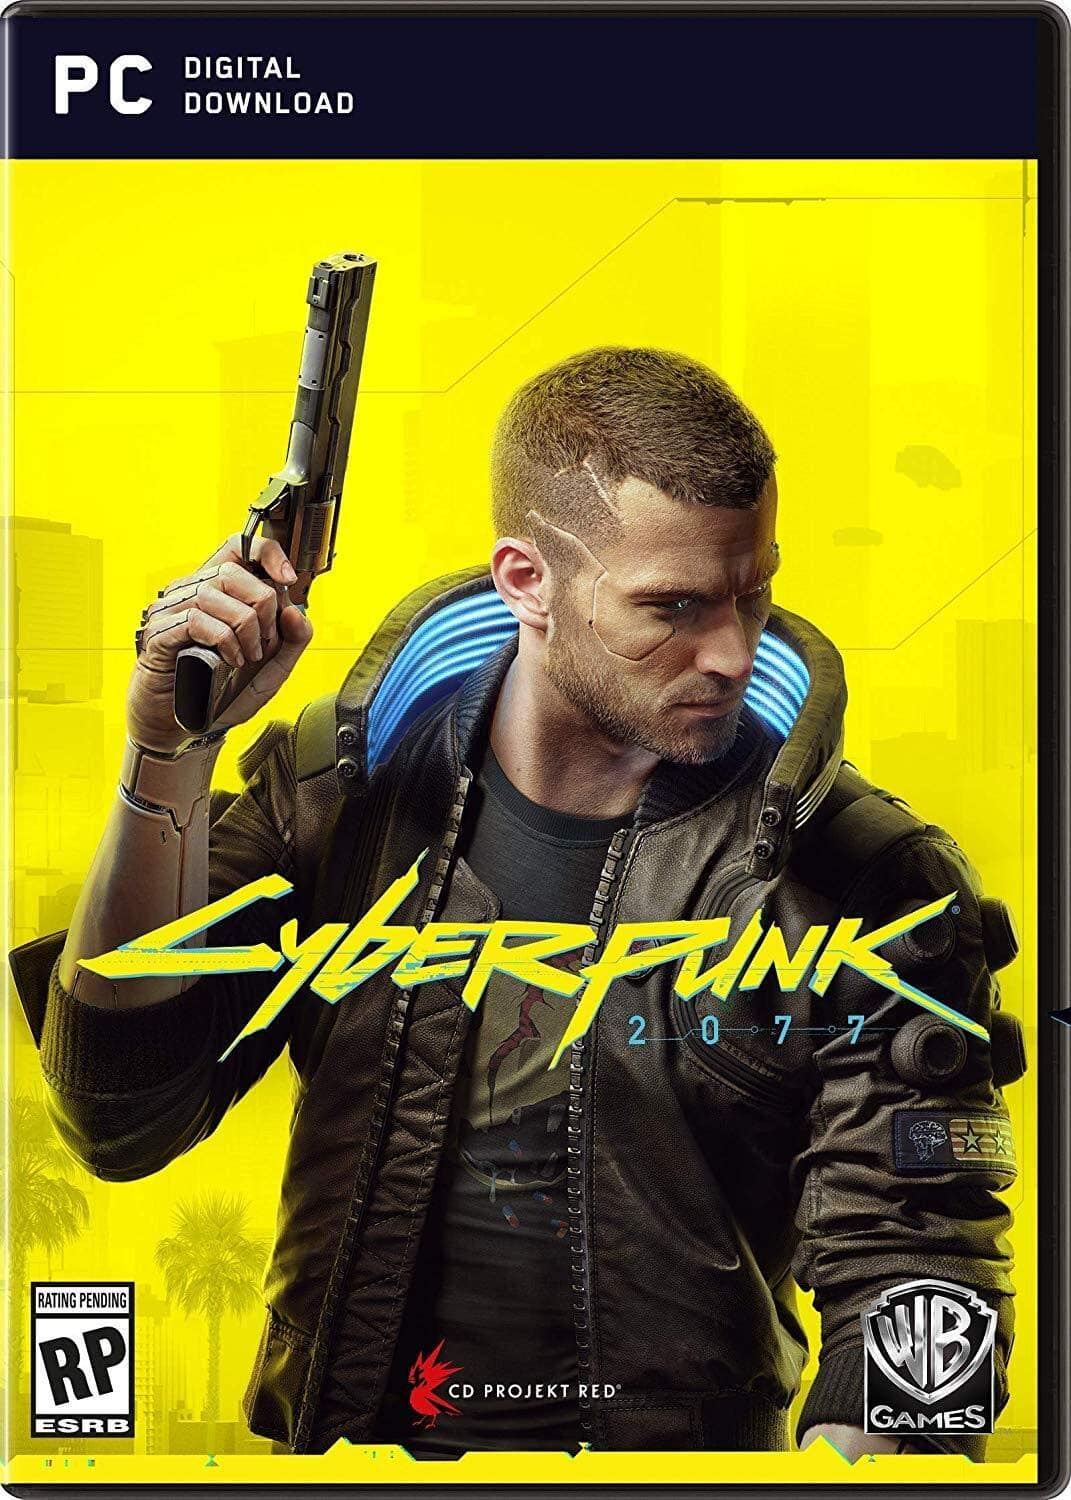 Cyberpunk 2077 - PC/Xbox 1/Ps4 [Pre Order][Amazon] $49.94